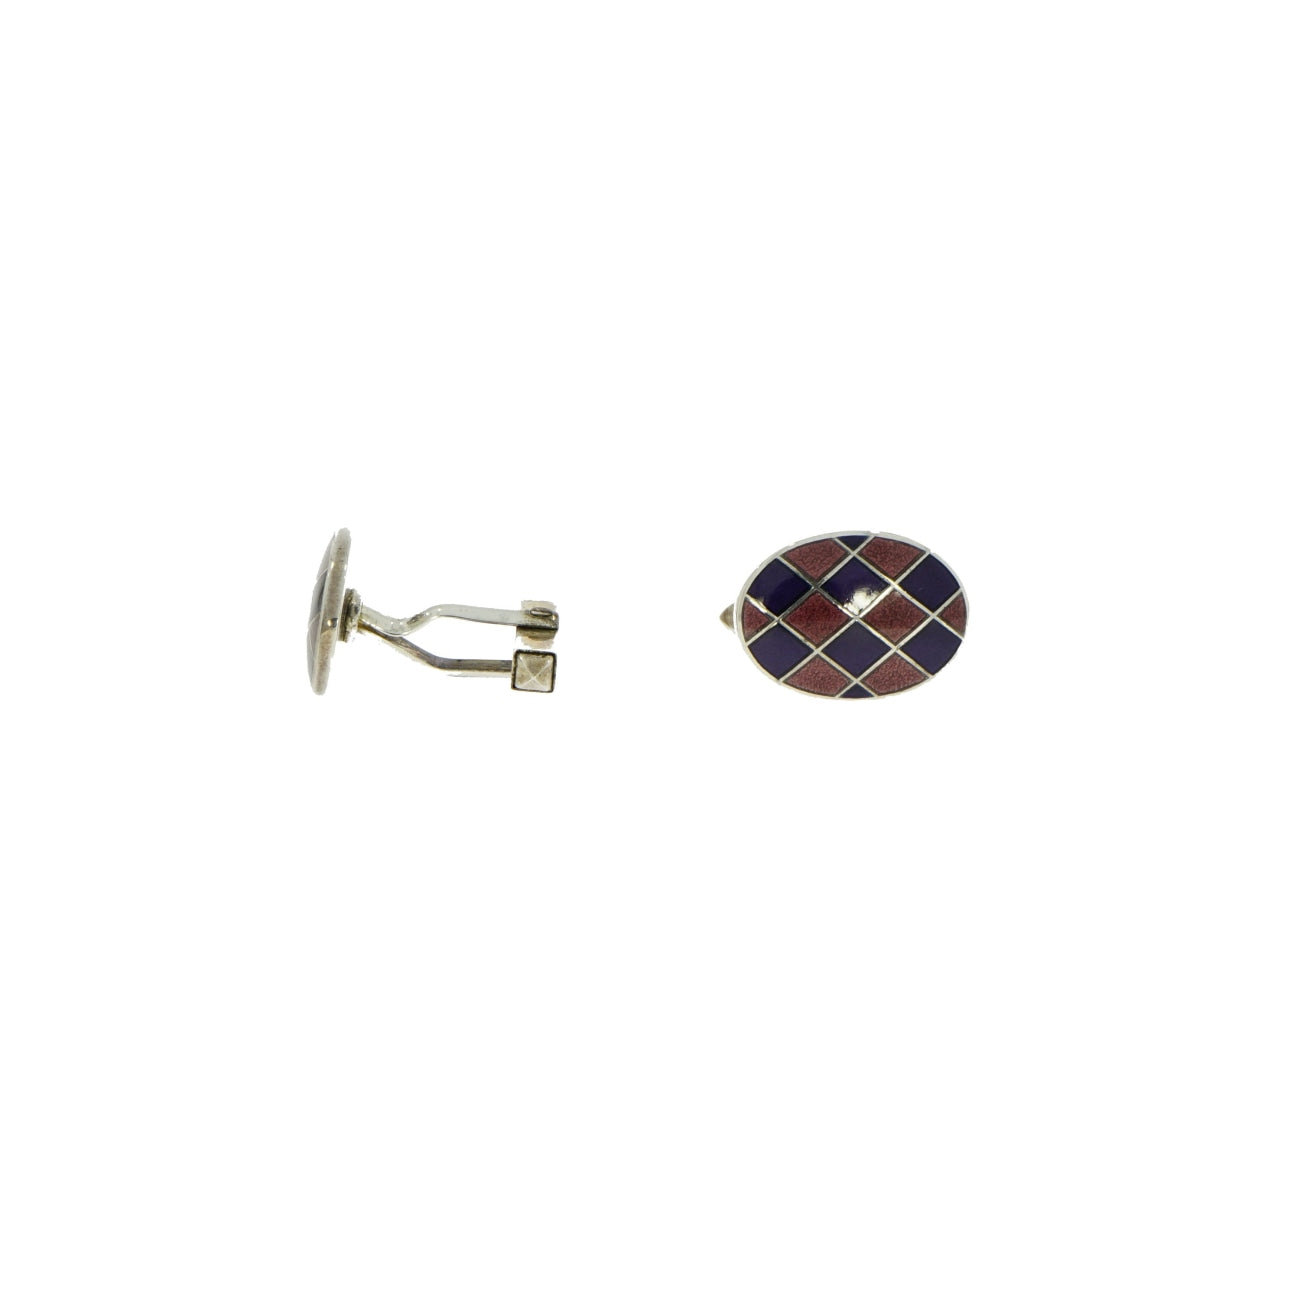 Manfredi Jewels Accessories - Harlequin Enameled Oval Sterling Silver Cufflinks | Manfredi Jewels